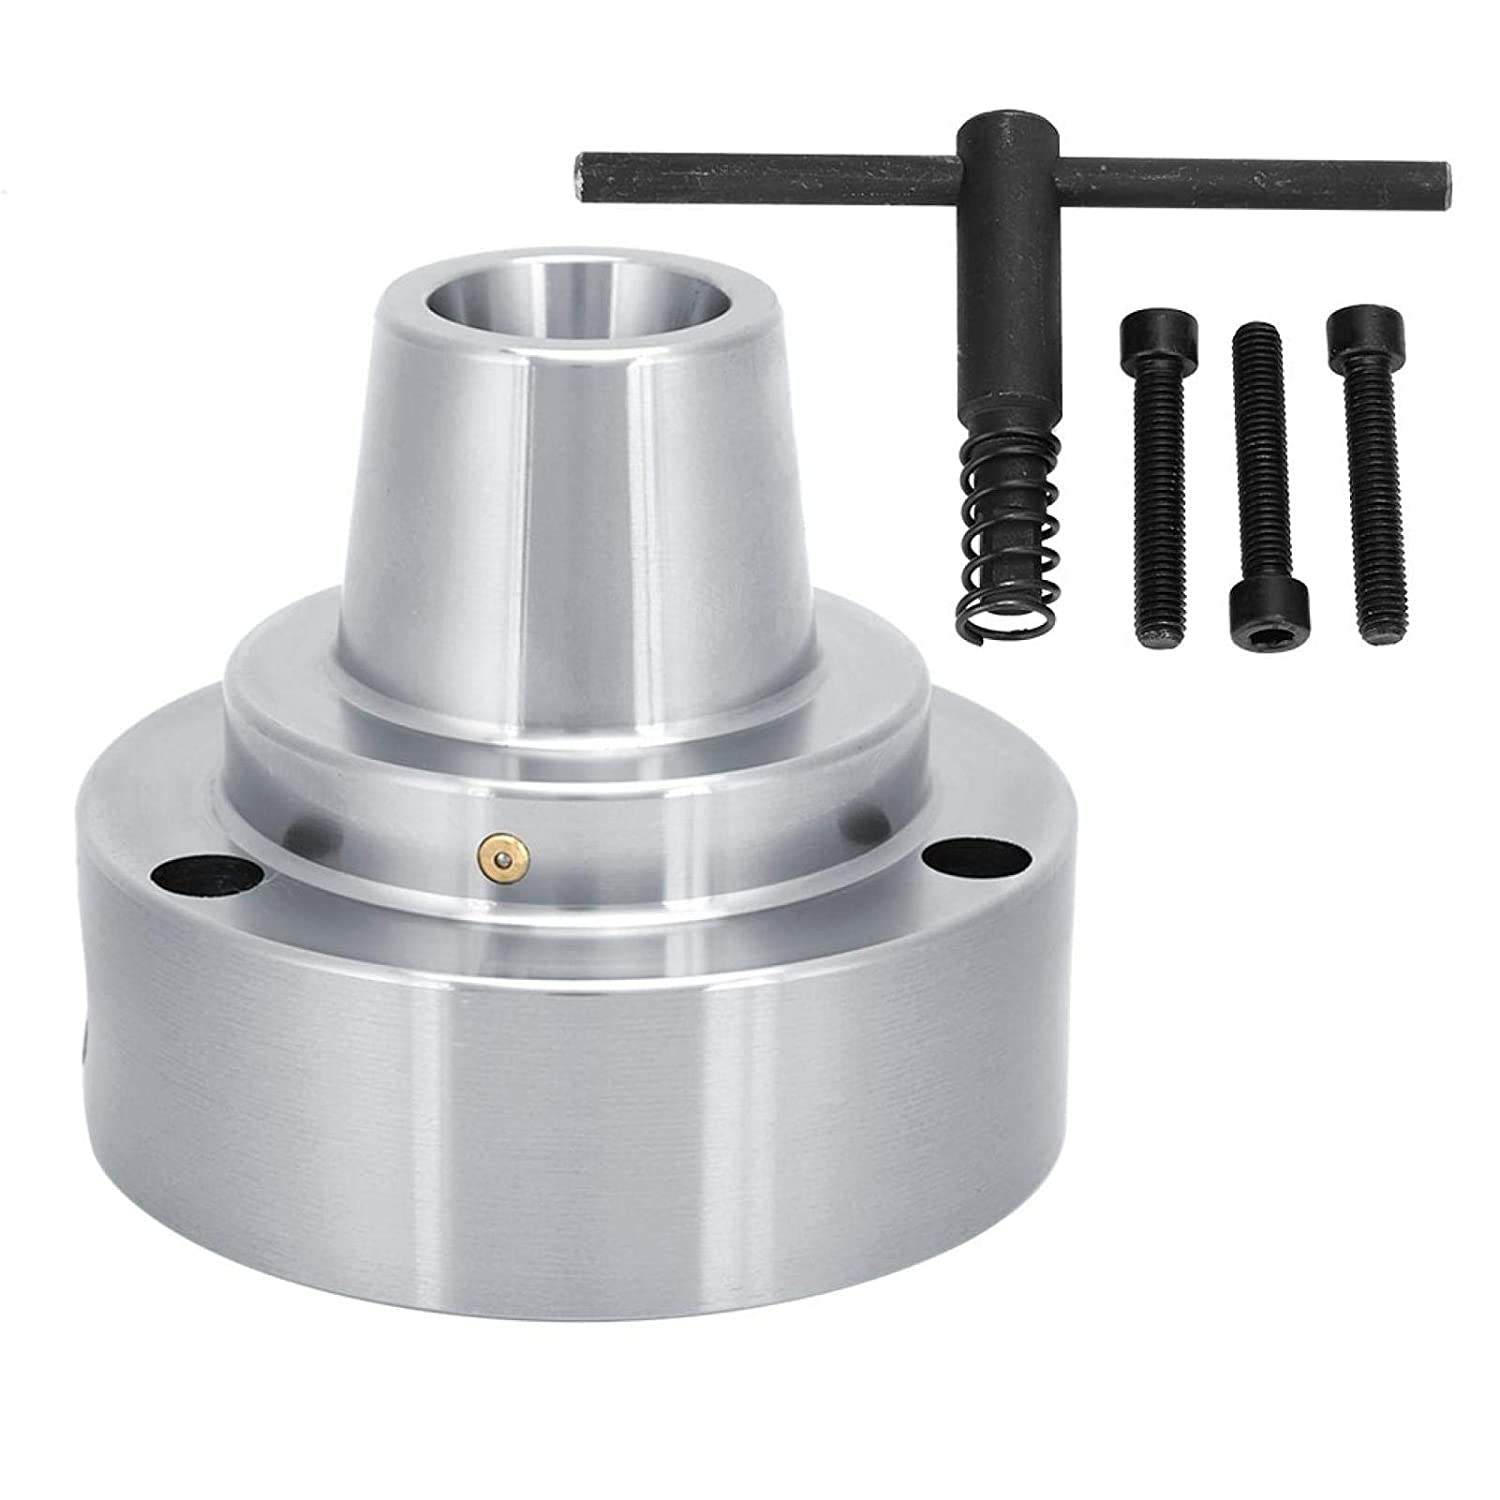 6000 Speed 12.5 x 11cm Our shop most popular Lathe Accuracy Chuck Max 83% OFF 5C TIR Collet 0.0006